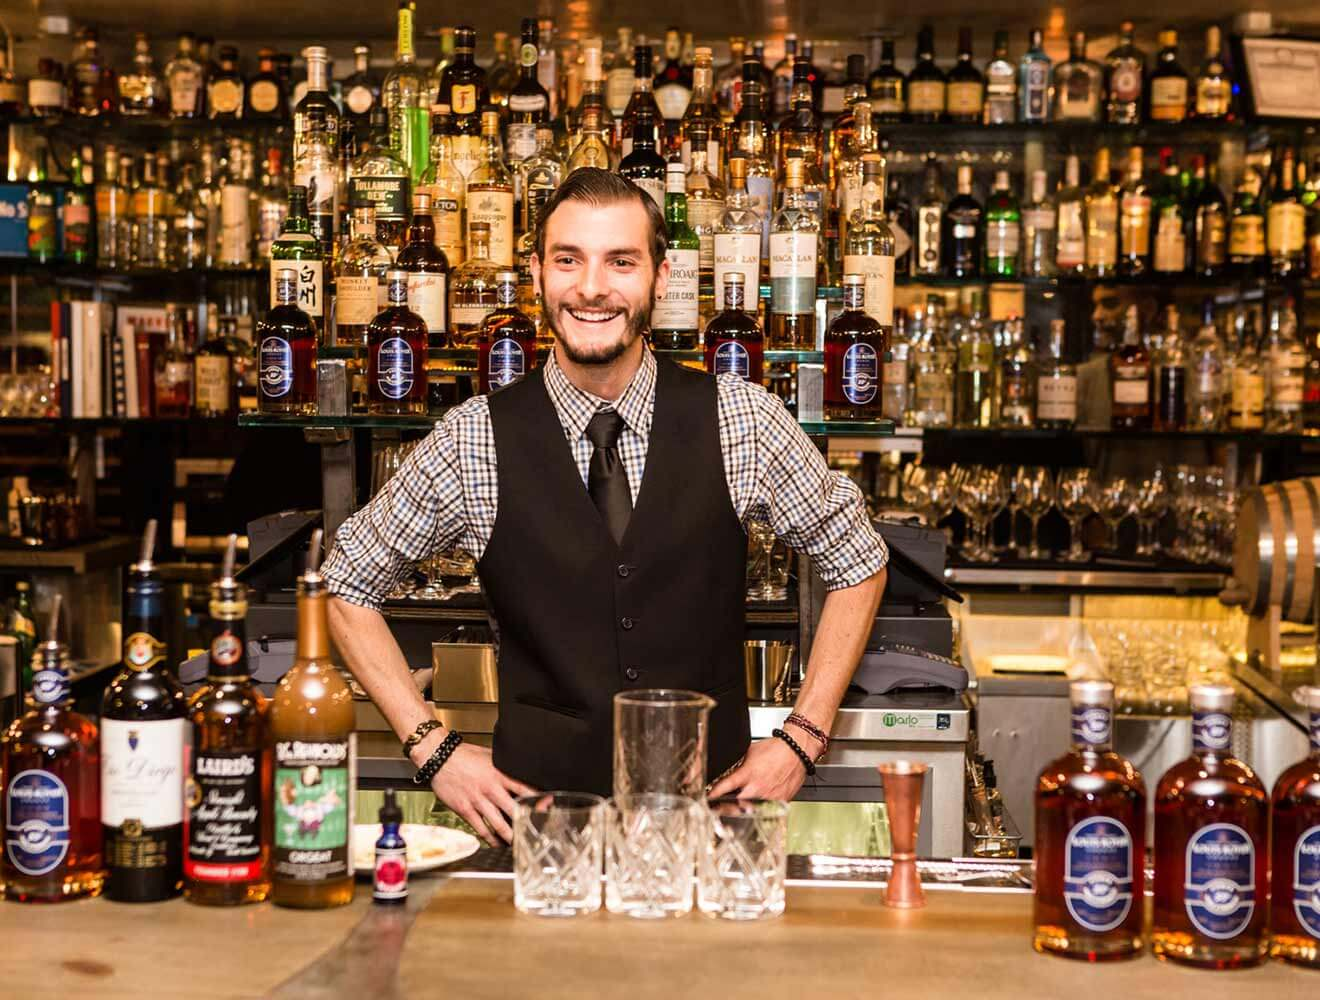 Mixologist and Chilled 100 Ambassador, Brett Esler